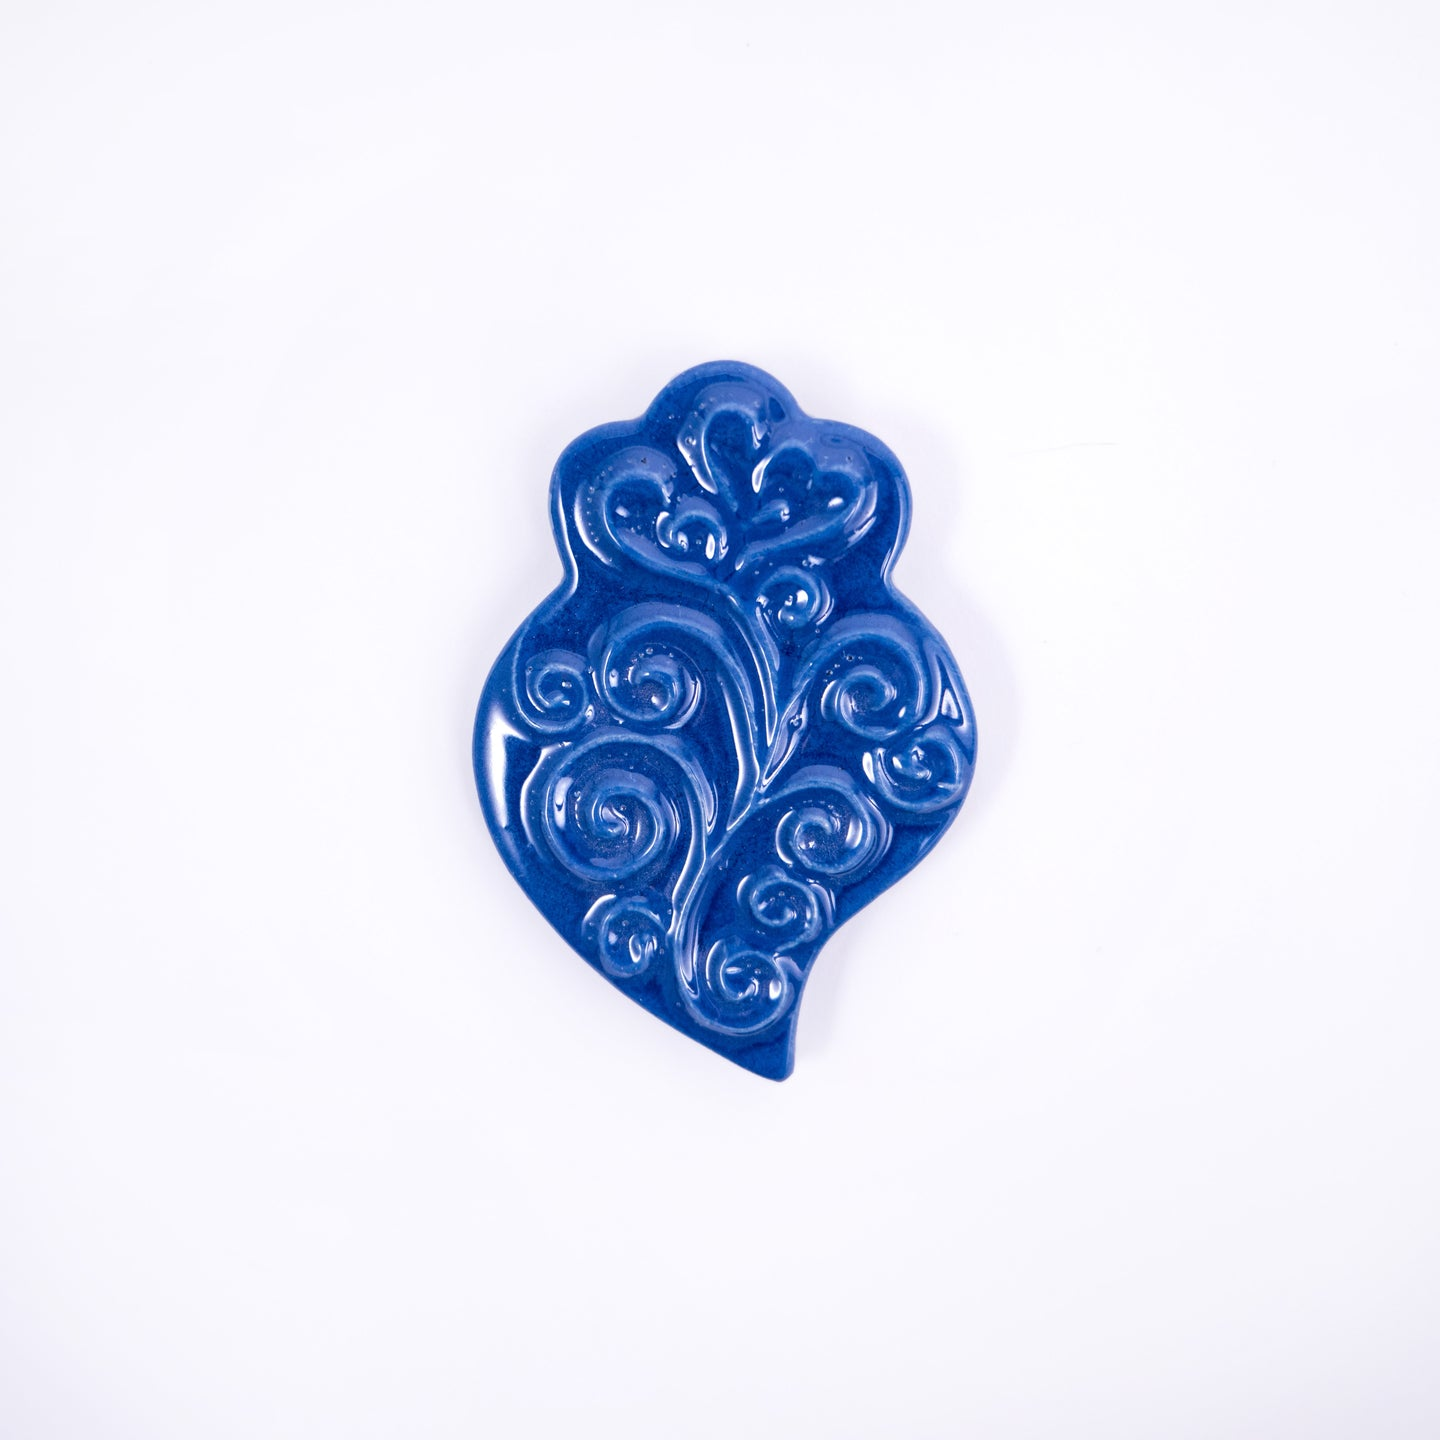 Heart of Viana Magnet - Azul